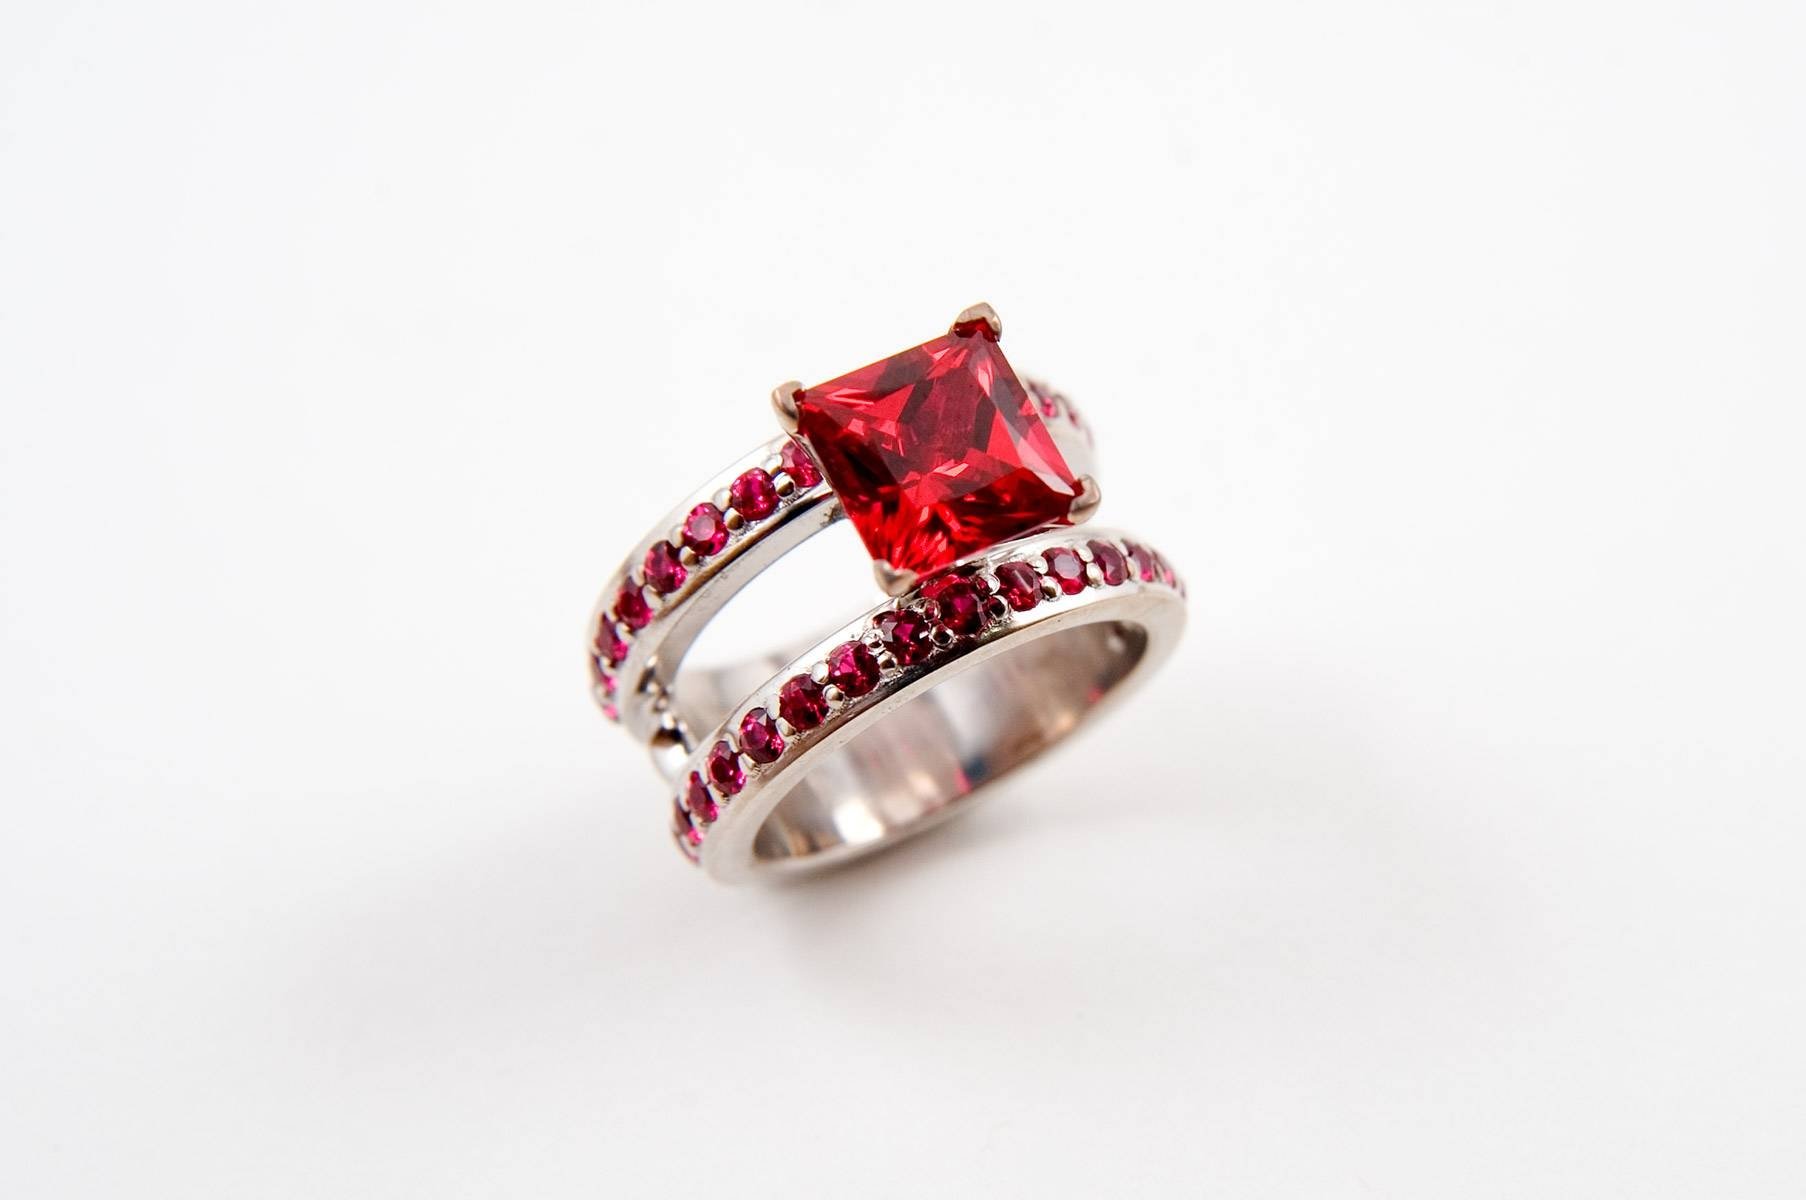 Wedding Rings : Cartier Engagement Rings Ruby Wedding Band Ruby In Most Up To Date Ruby Anniversary Rings (View 9 of 25)